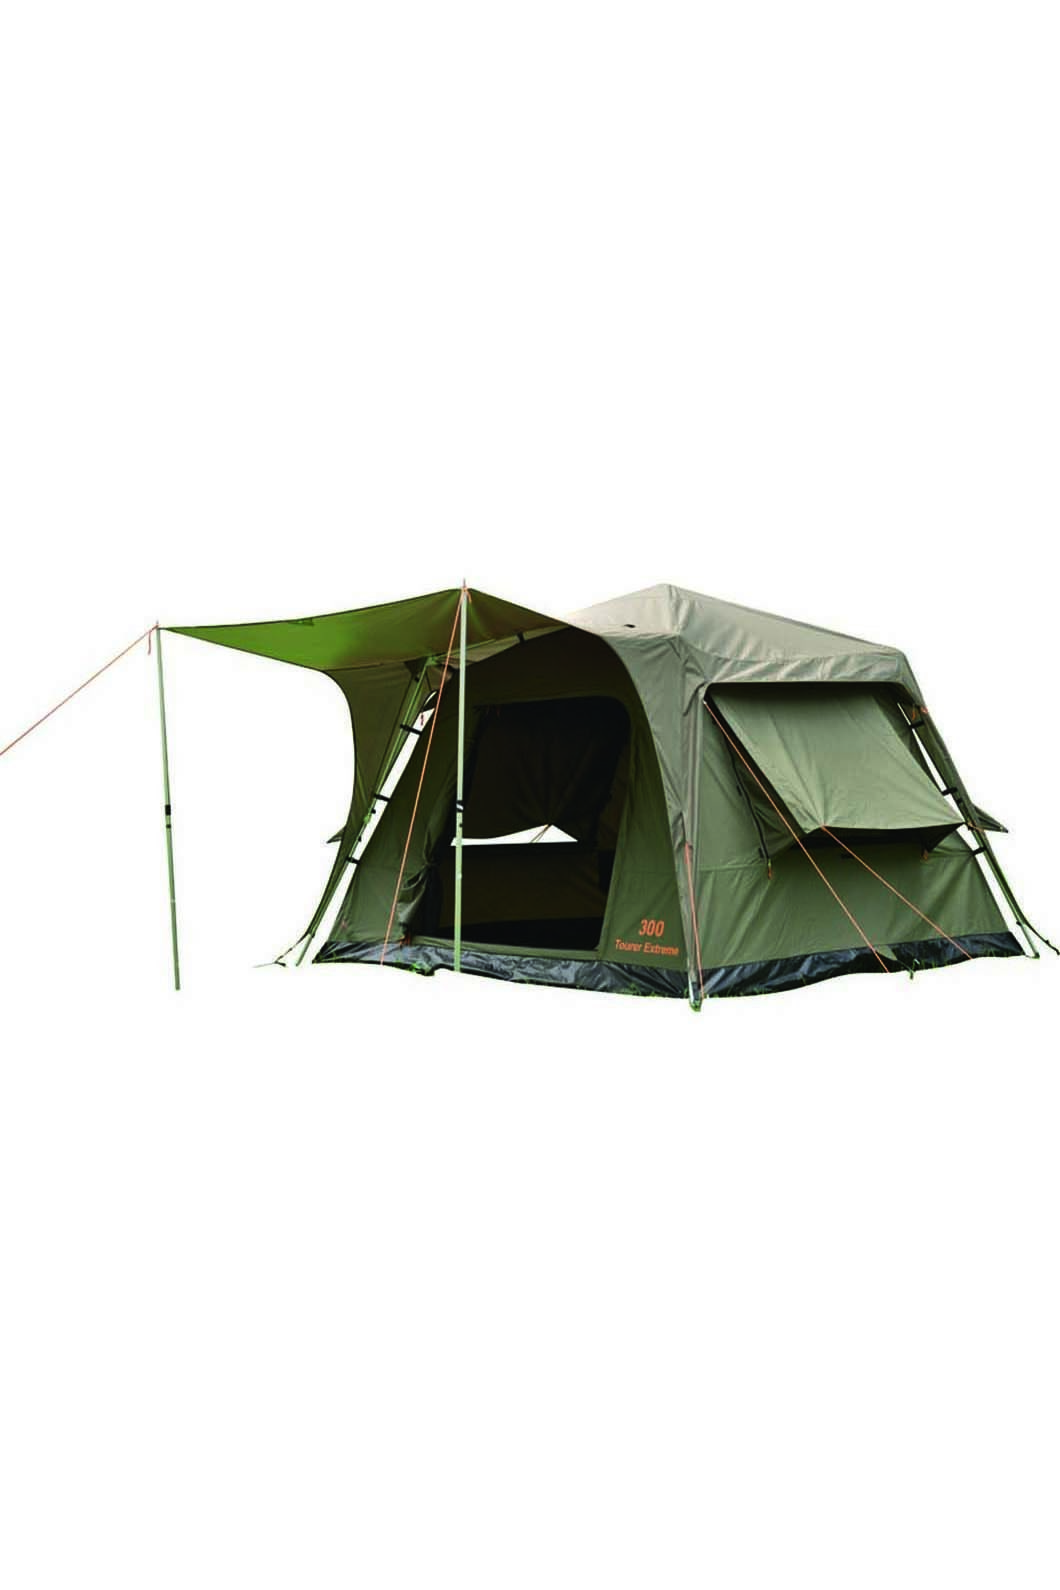 Wanderer Tourer Extreme 300 5 Person Touring Tent, None, hi-res